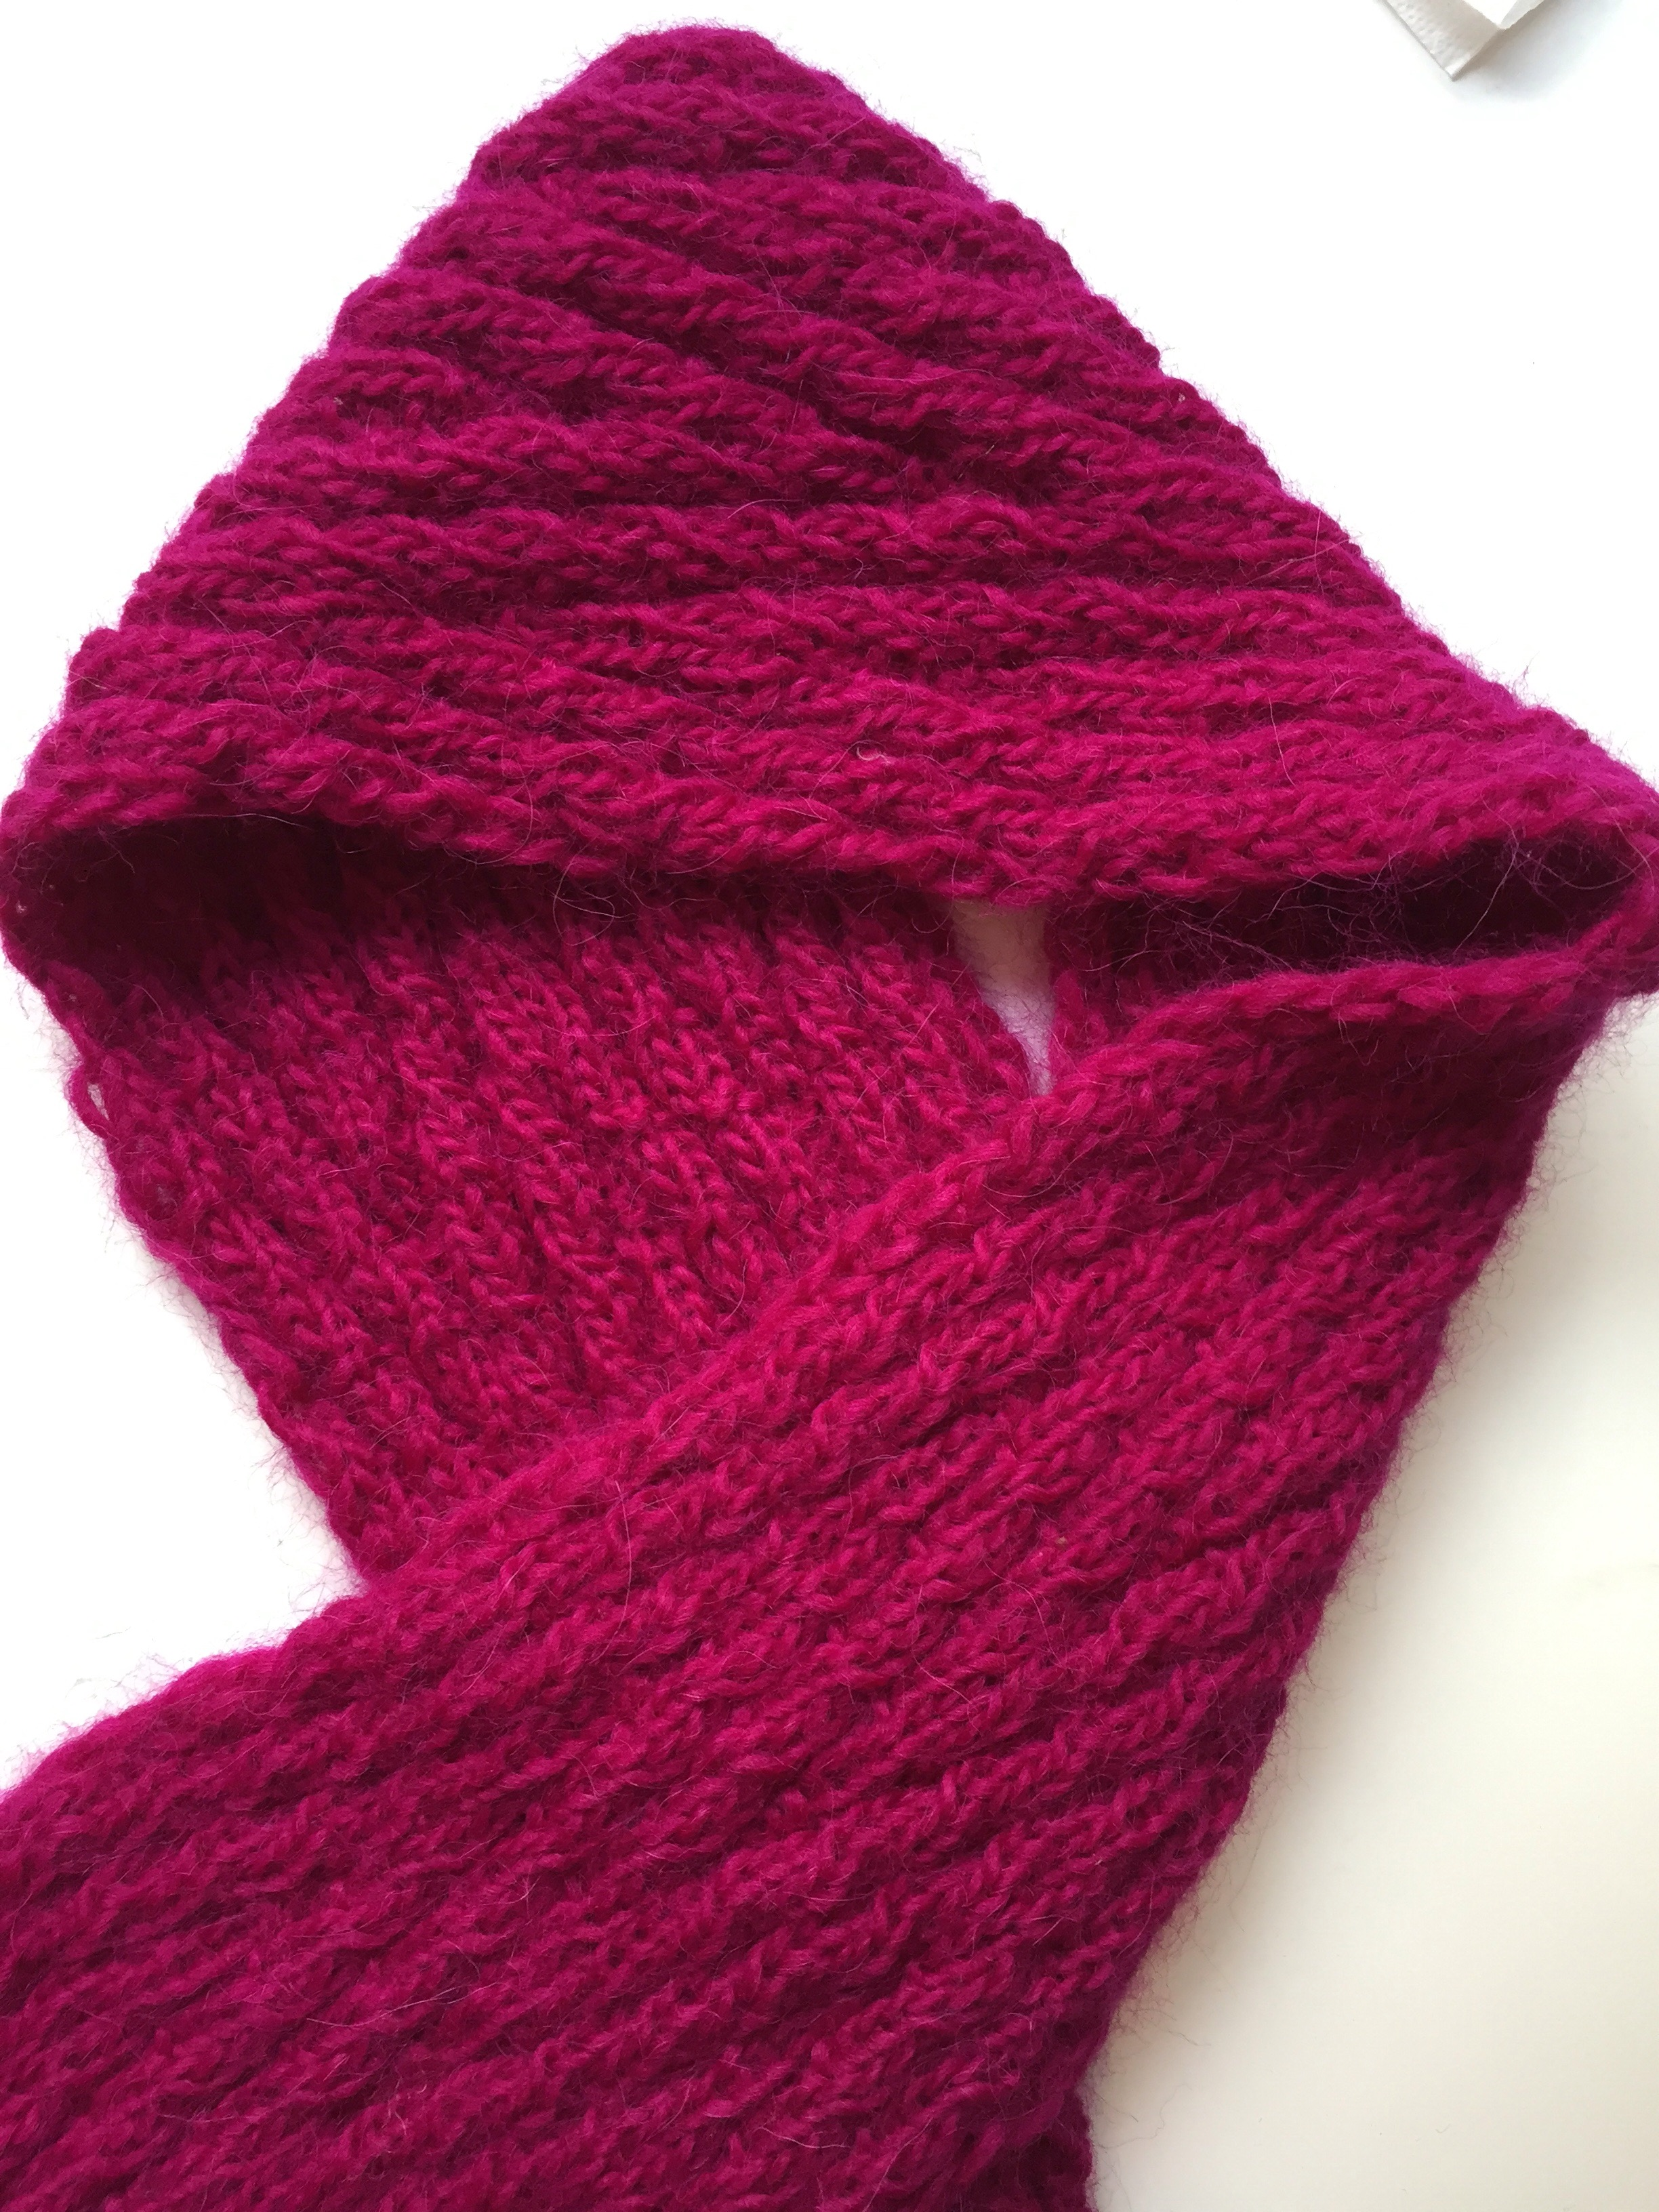 Reversible Knitting Patterns For Scarves Best Inspiration